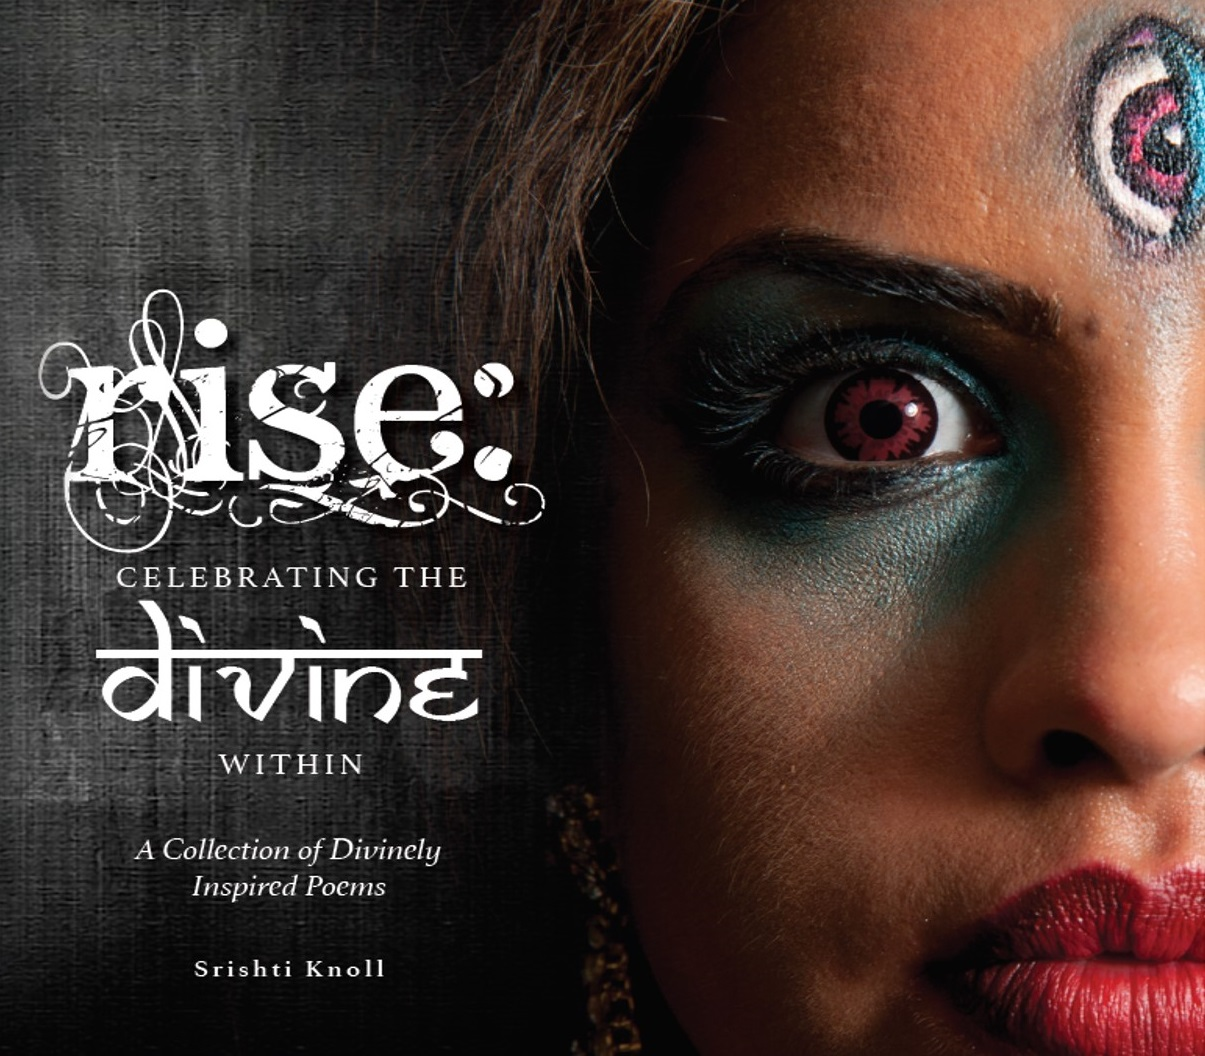 RISE : CELEBRATING THE DIVINE WITHIN